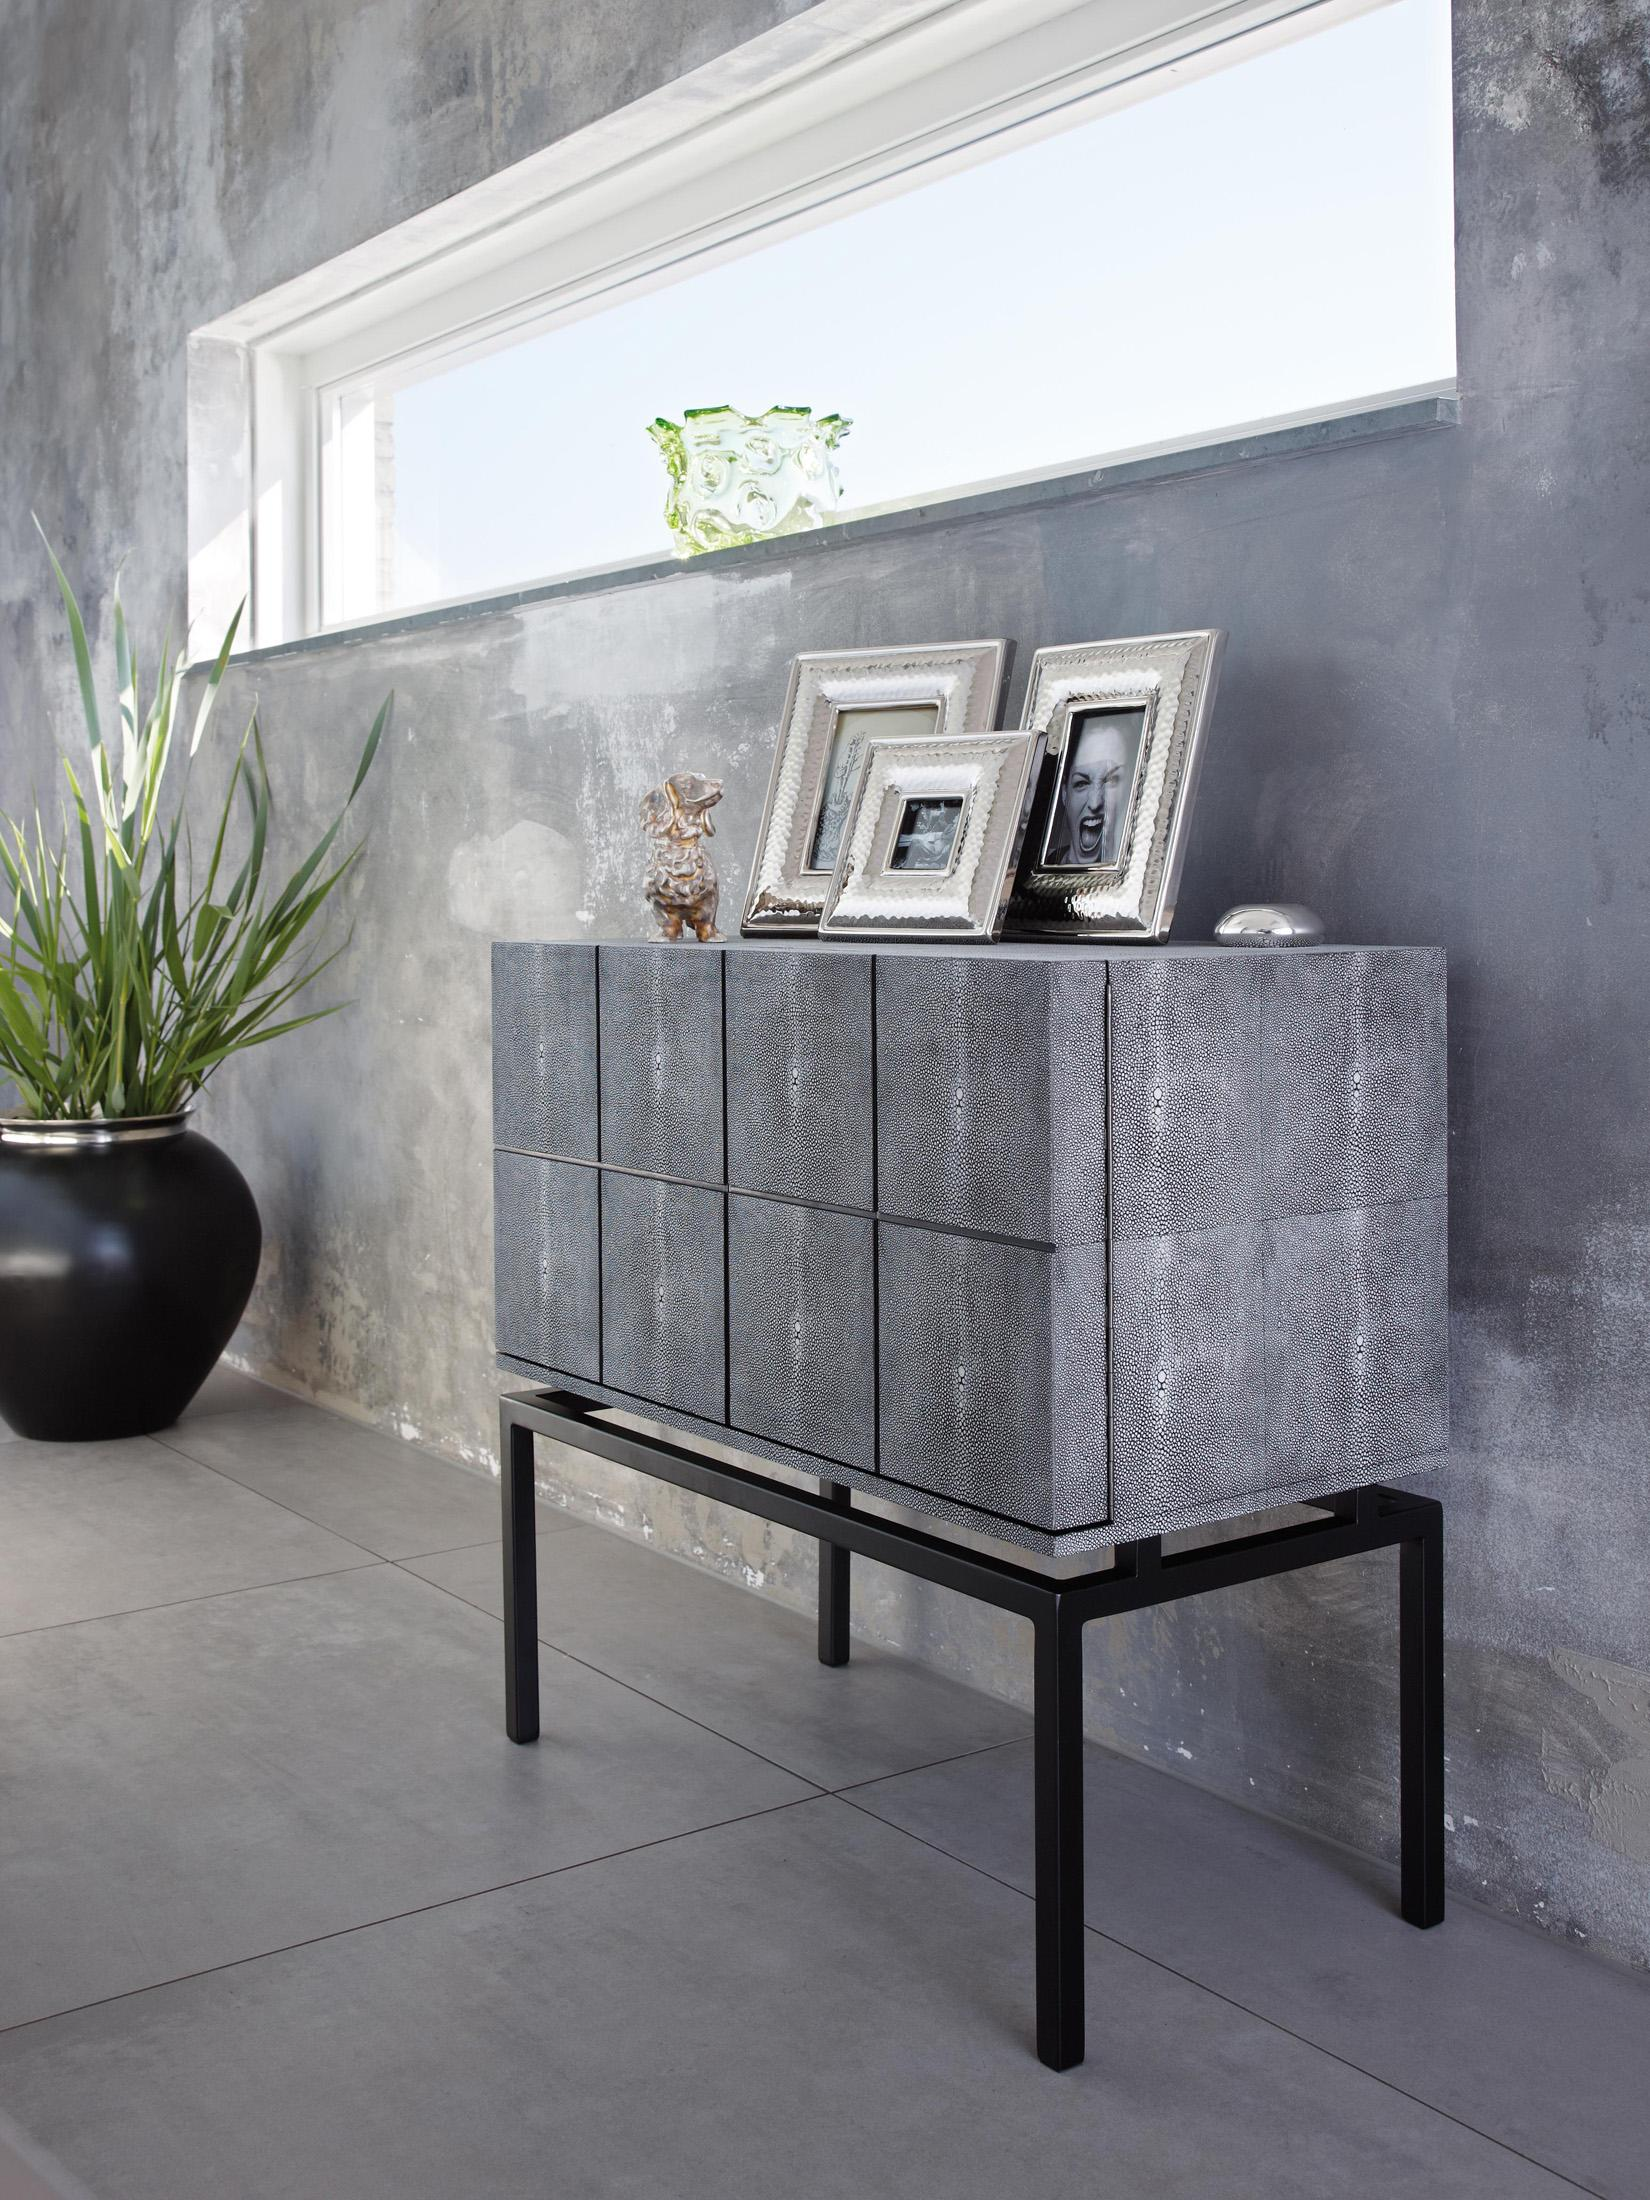 Sideboard in Beton-Optik #sideboard #minimalistisch #industriedesign ©Lambert